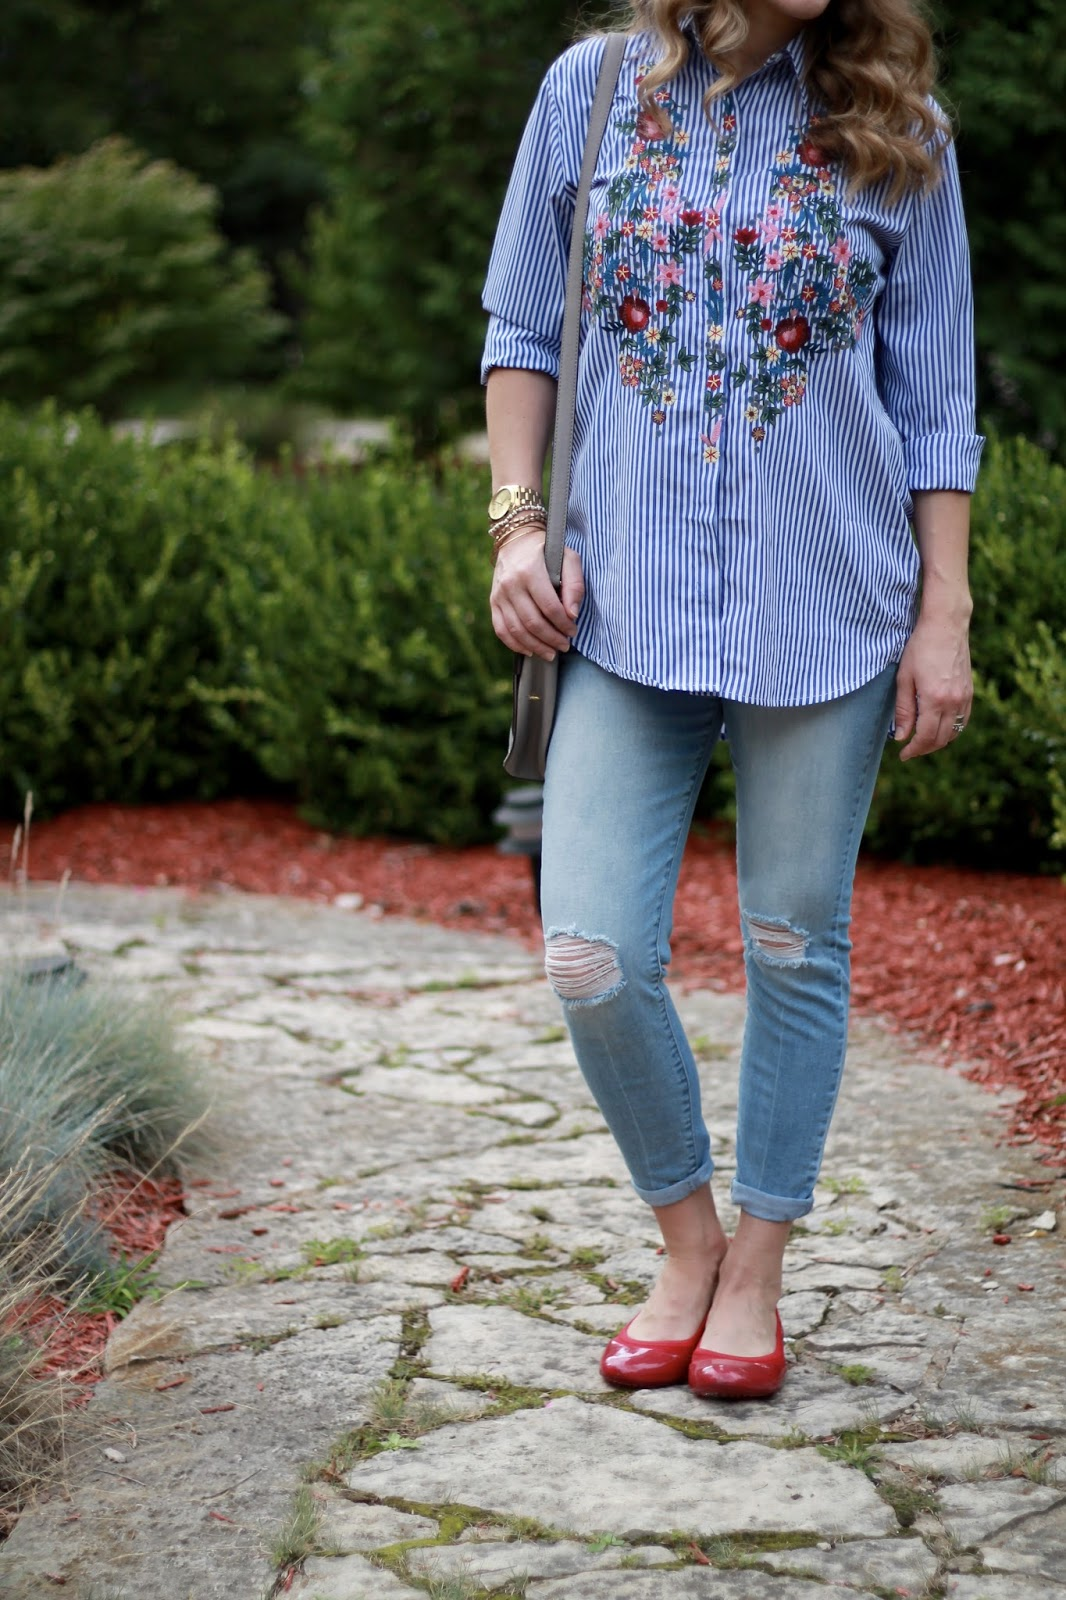 embroidered striped button up, distressed maternity jeans, red flats, grey saddlebag, casual fall maternity outfit